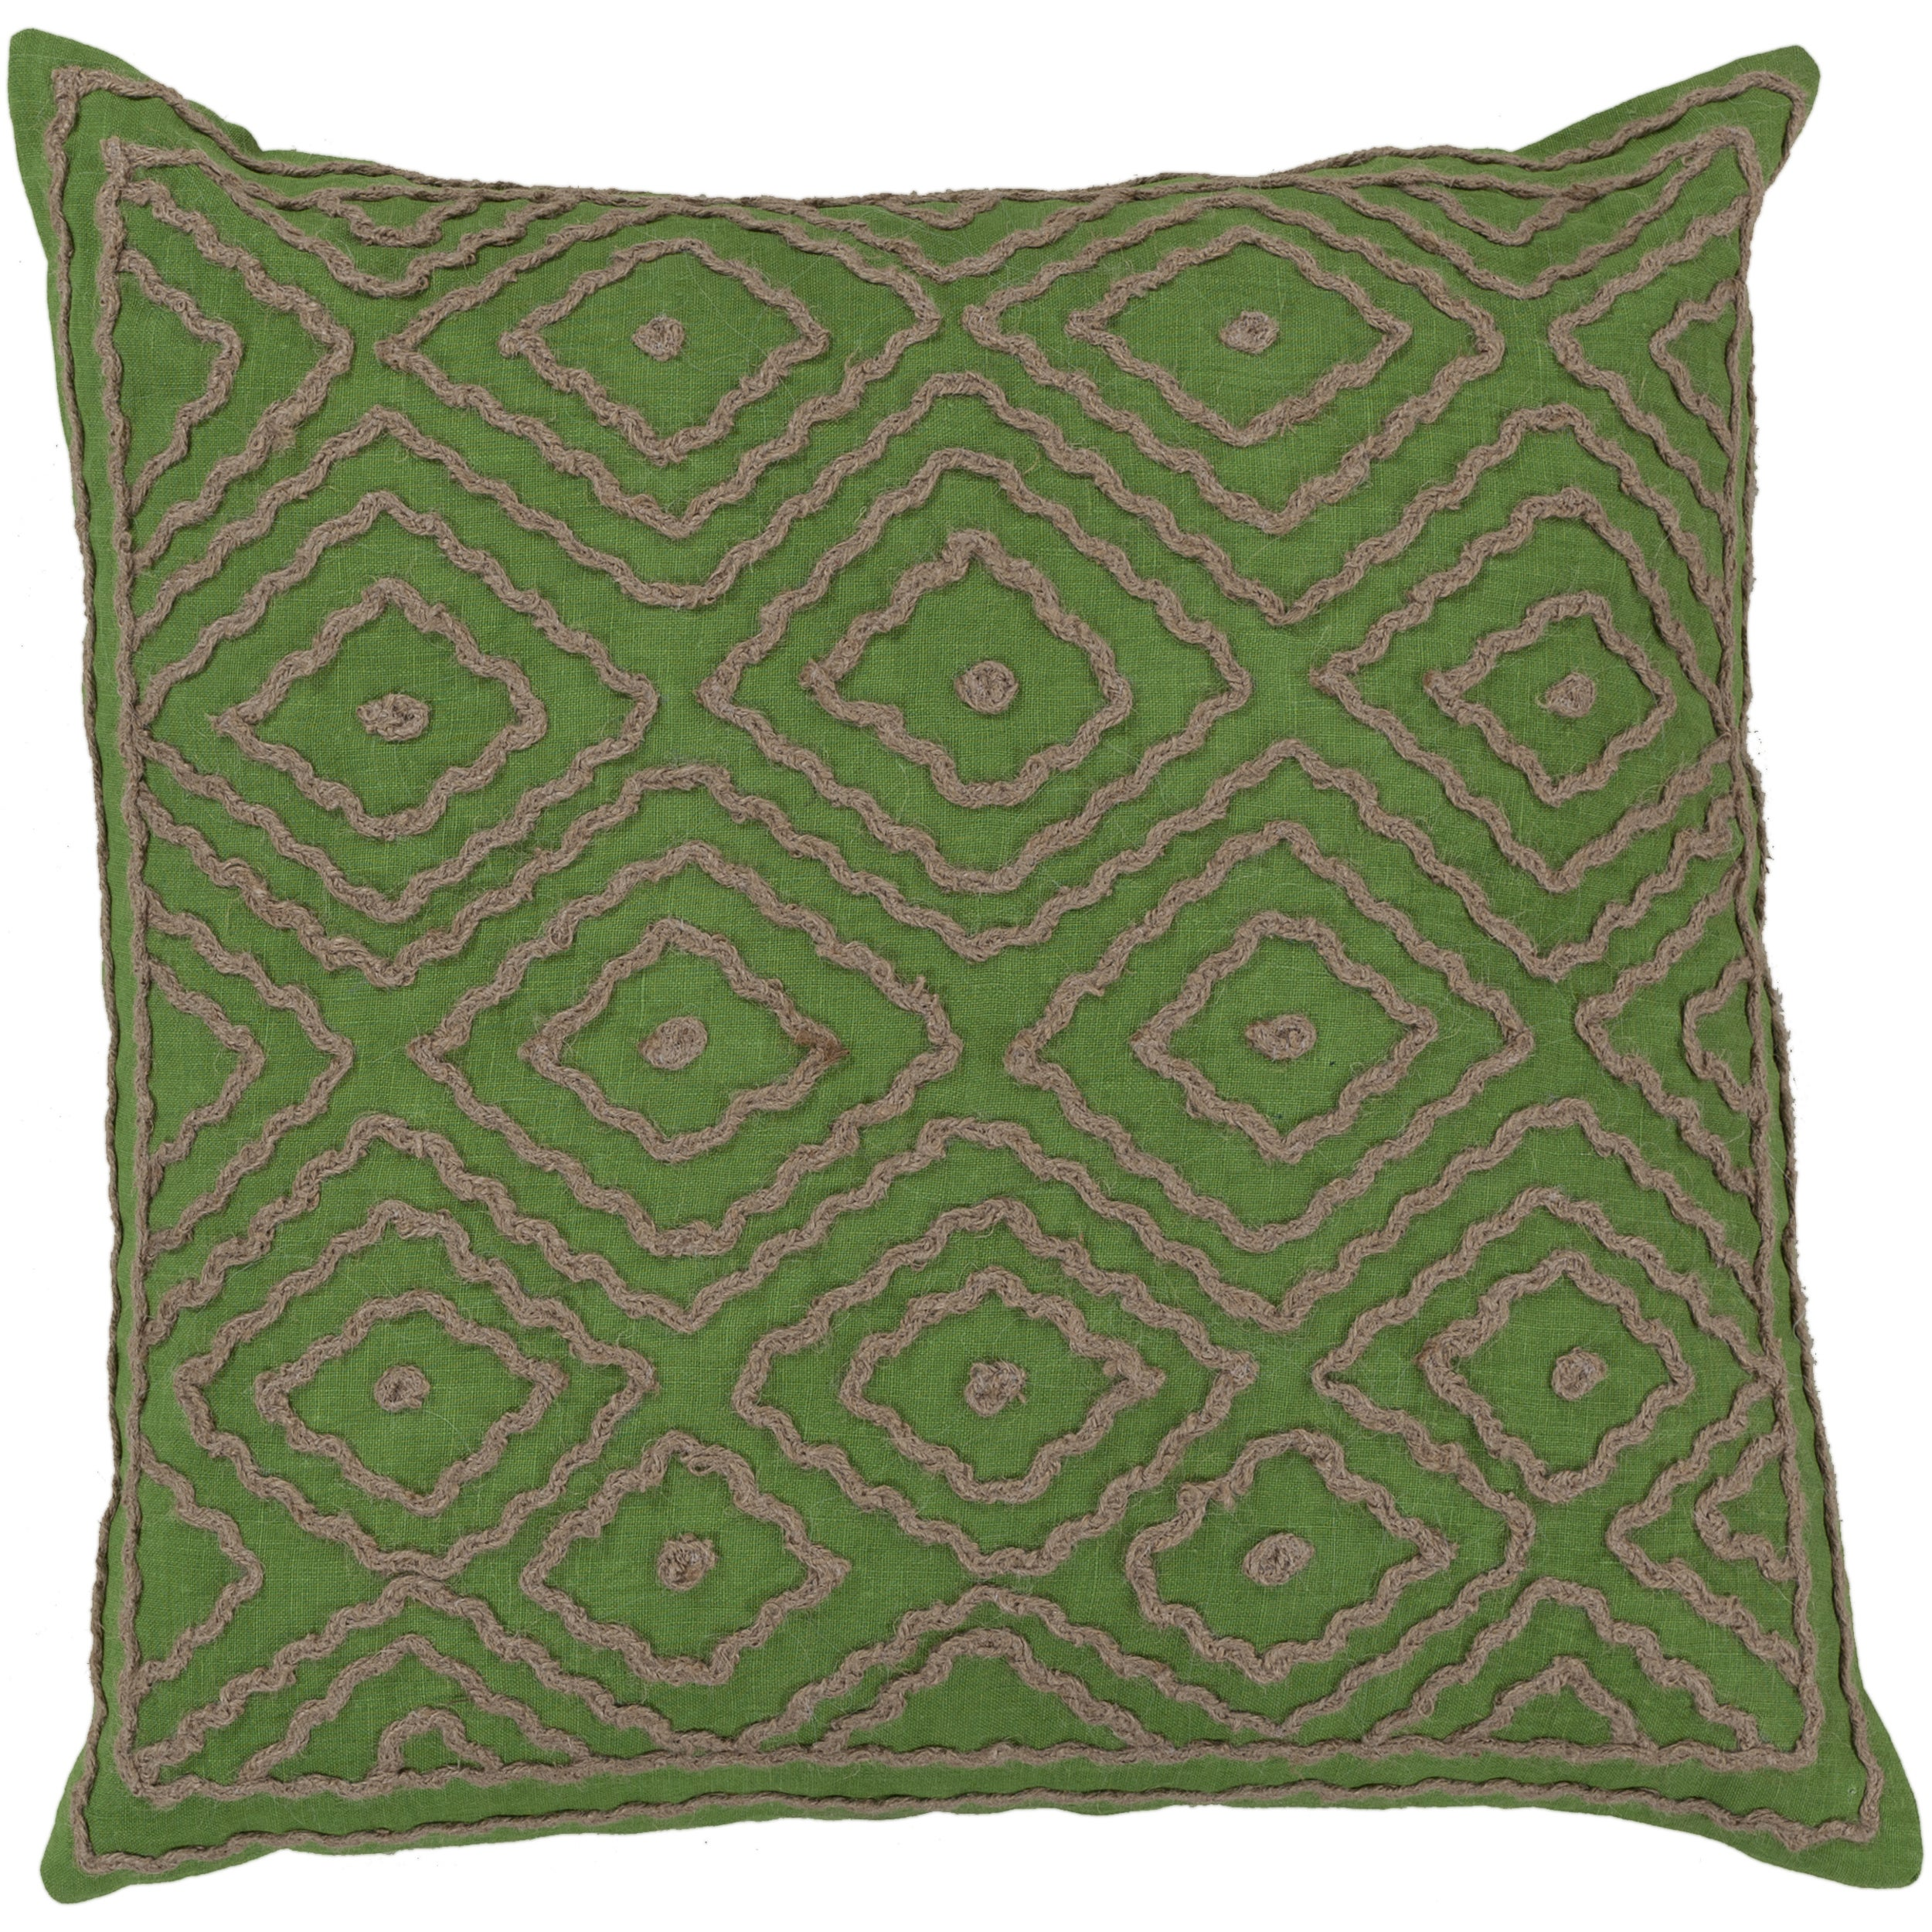 Decorative Sergio Geometric Feather Down or Polyester Filled PIllow 20-inch (Down - Green Feather and Down Filled)